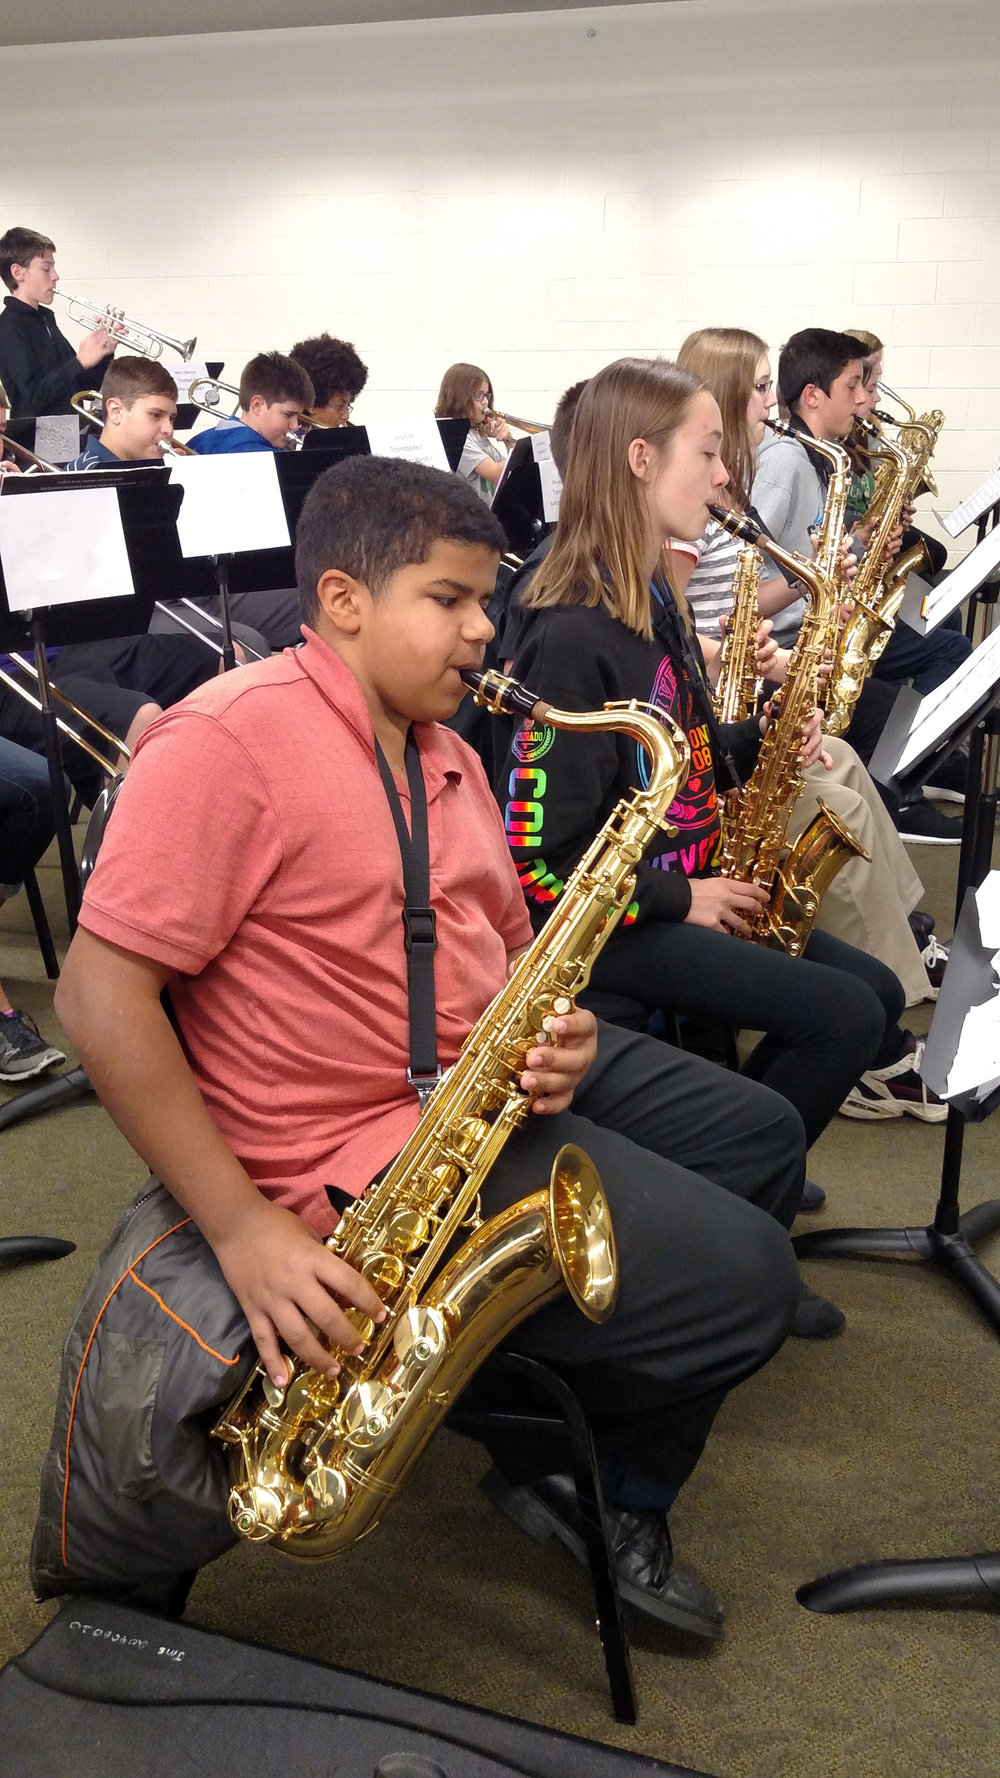 Student saxophone player in rehearsal at a district festival